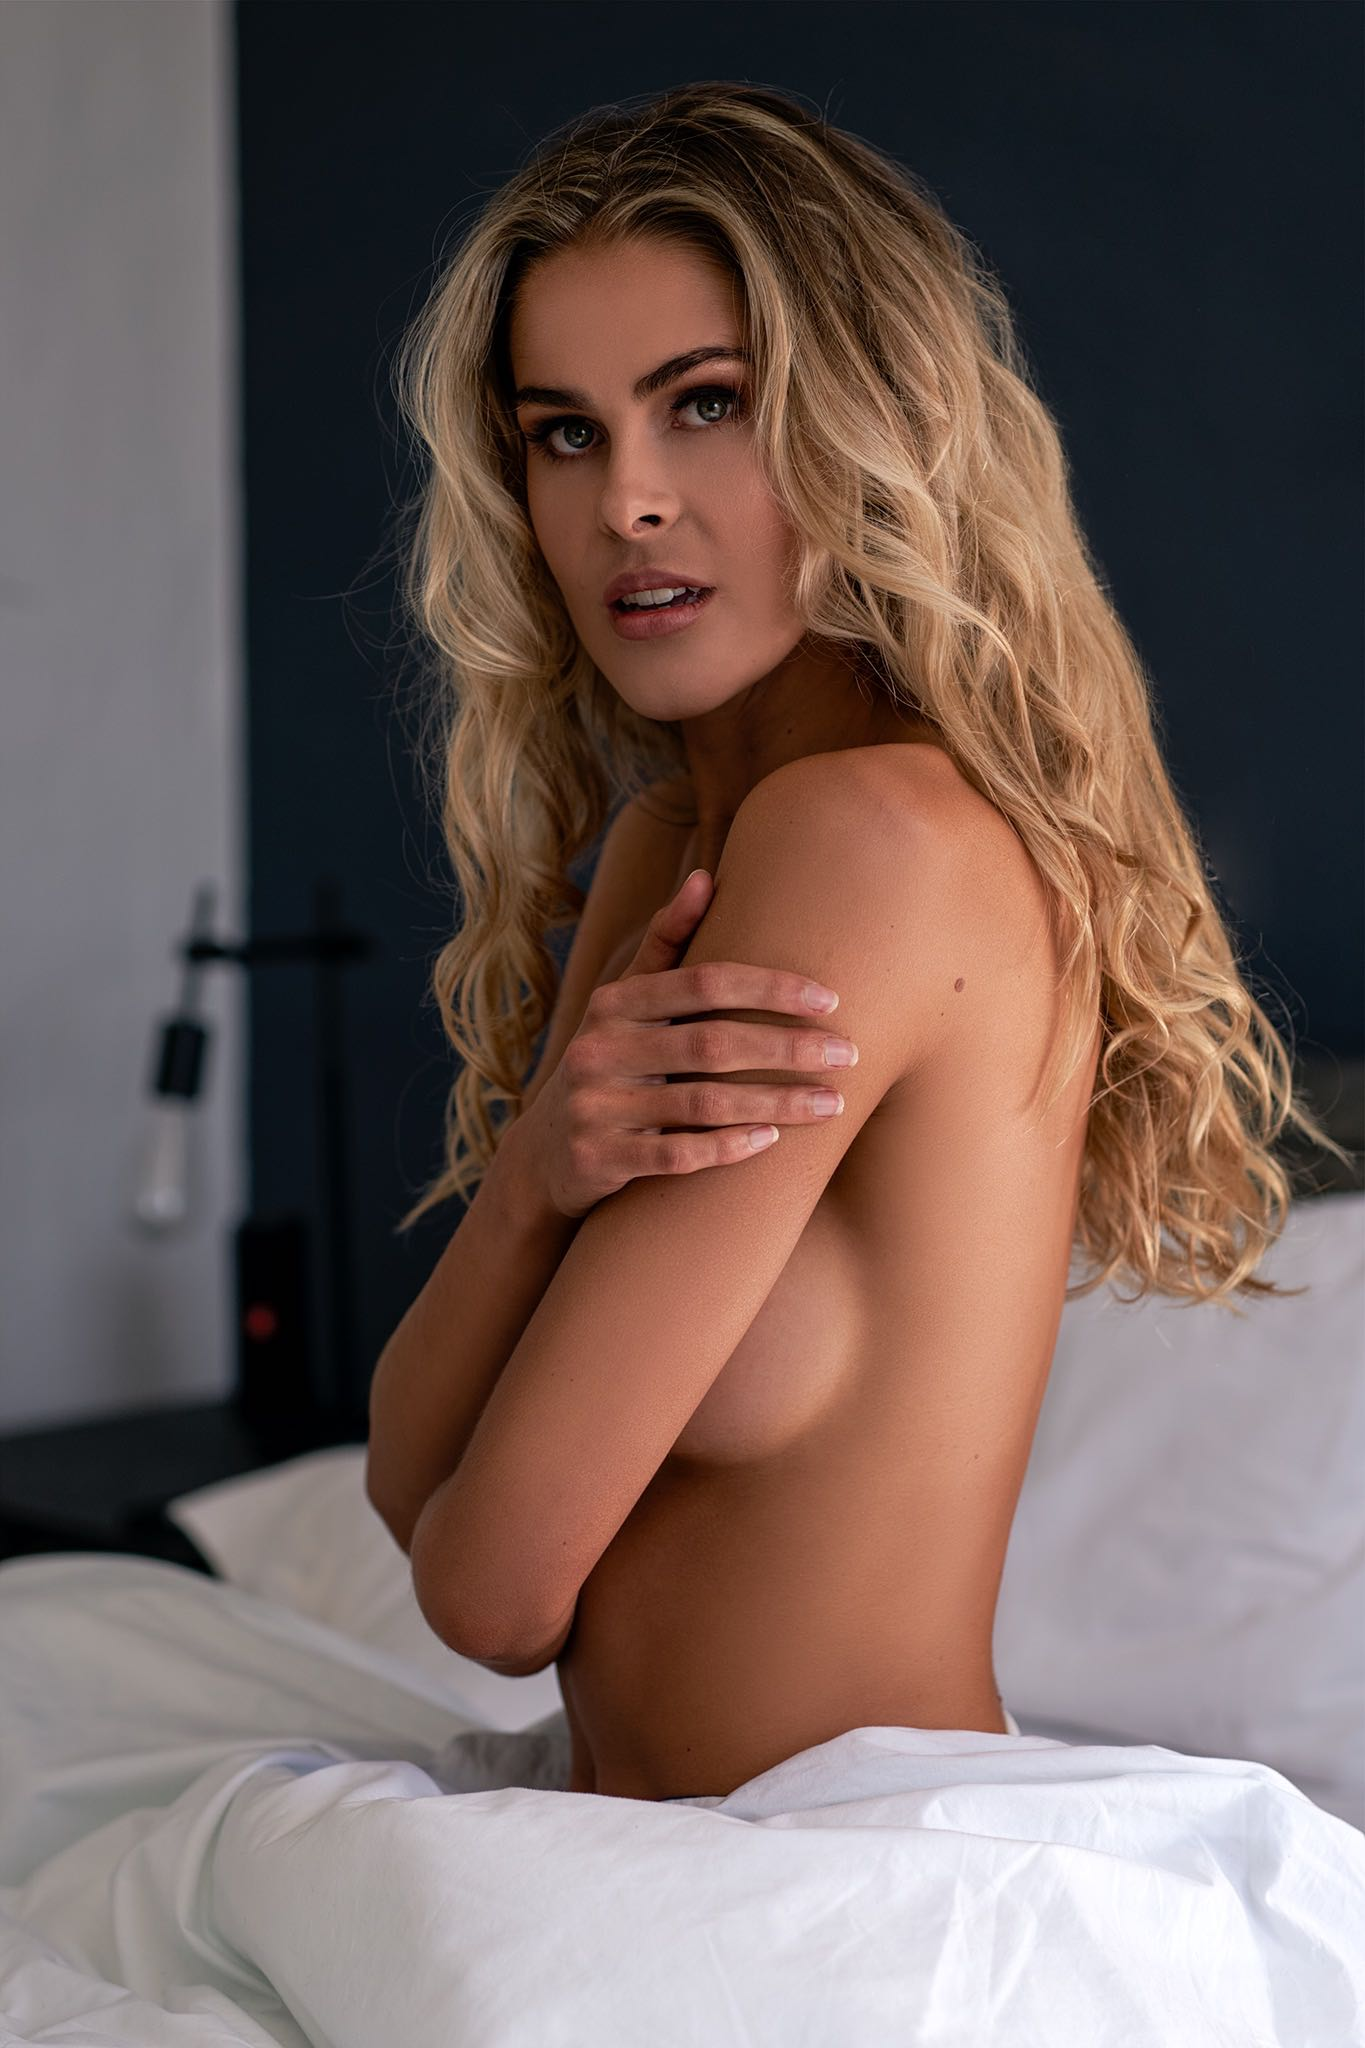 Meet Katelyn Barkhuizen in our SA Babes feature